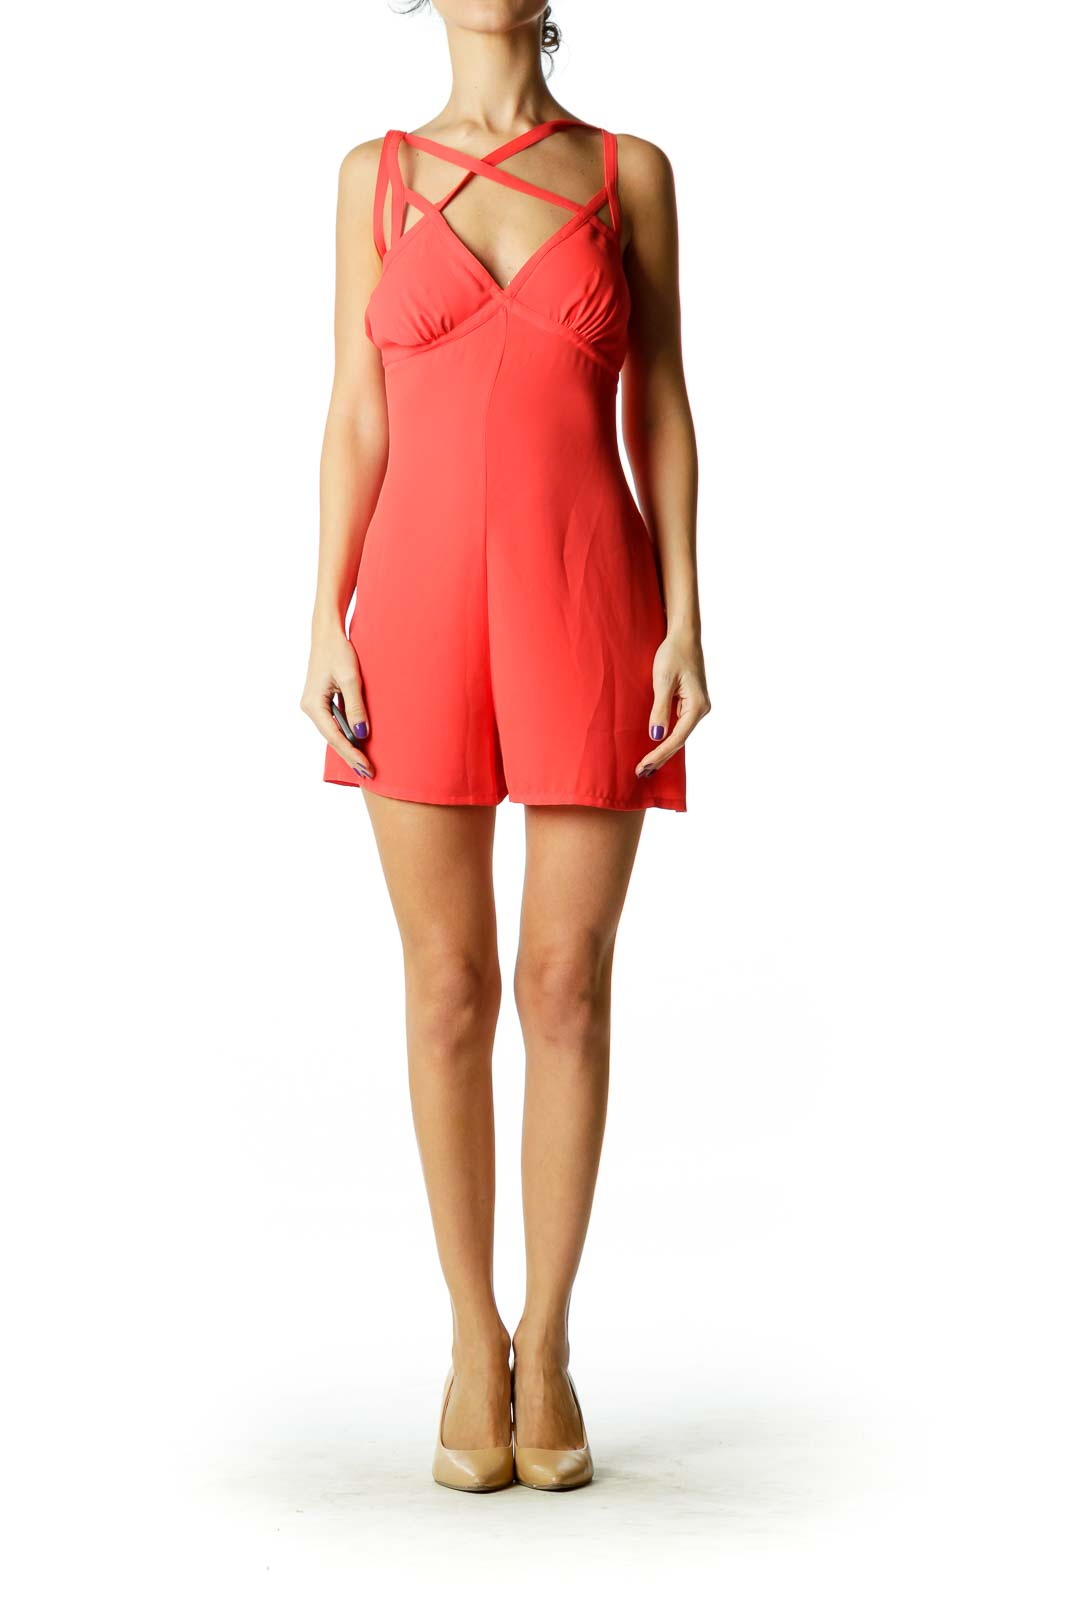 Orange Strapped Romper